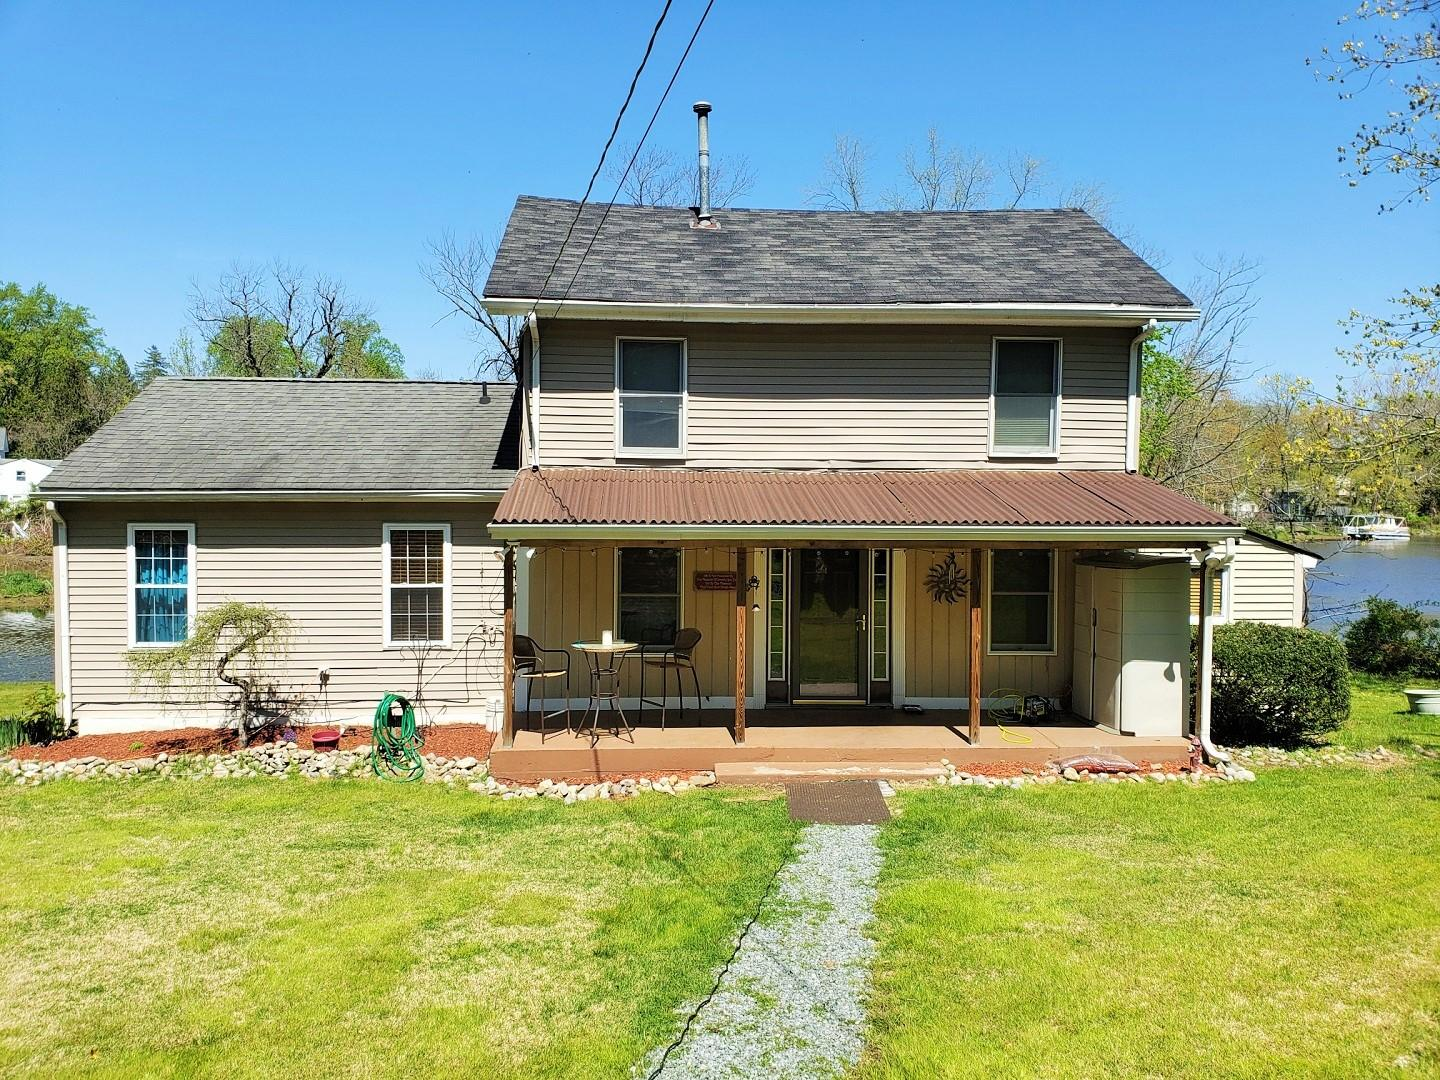 Property Image for 83 Hickory Ave